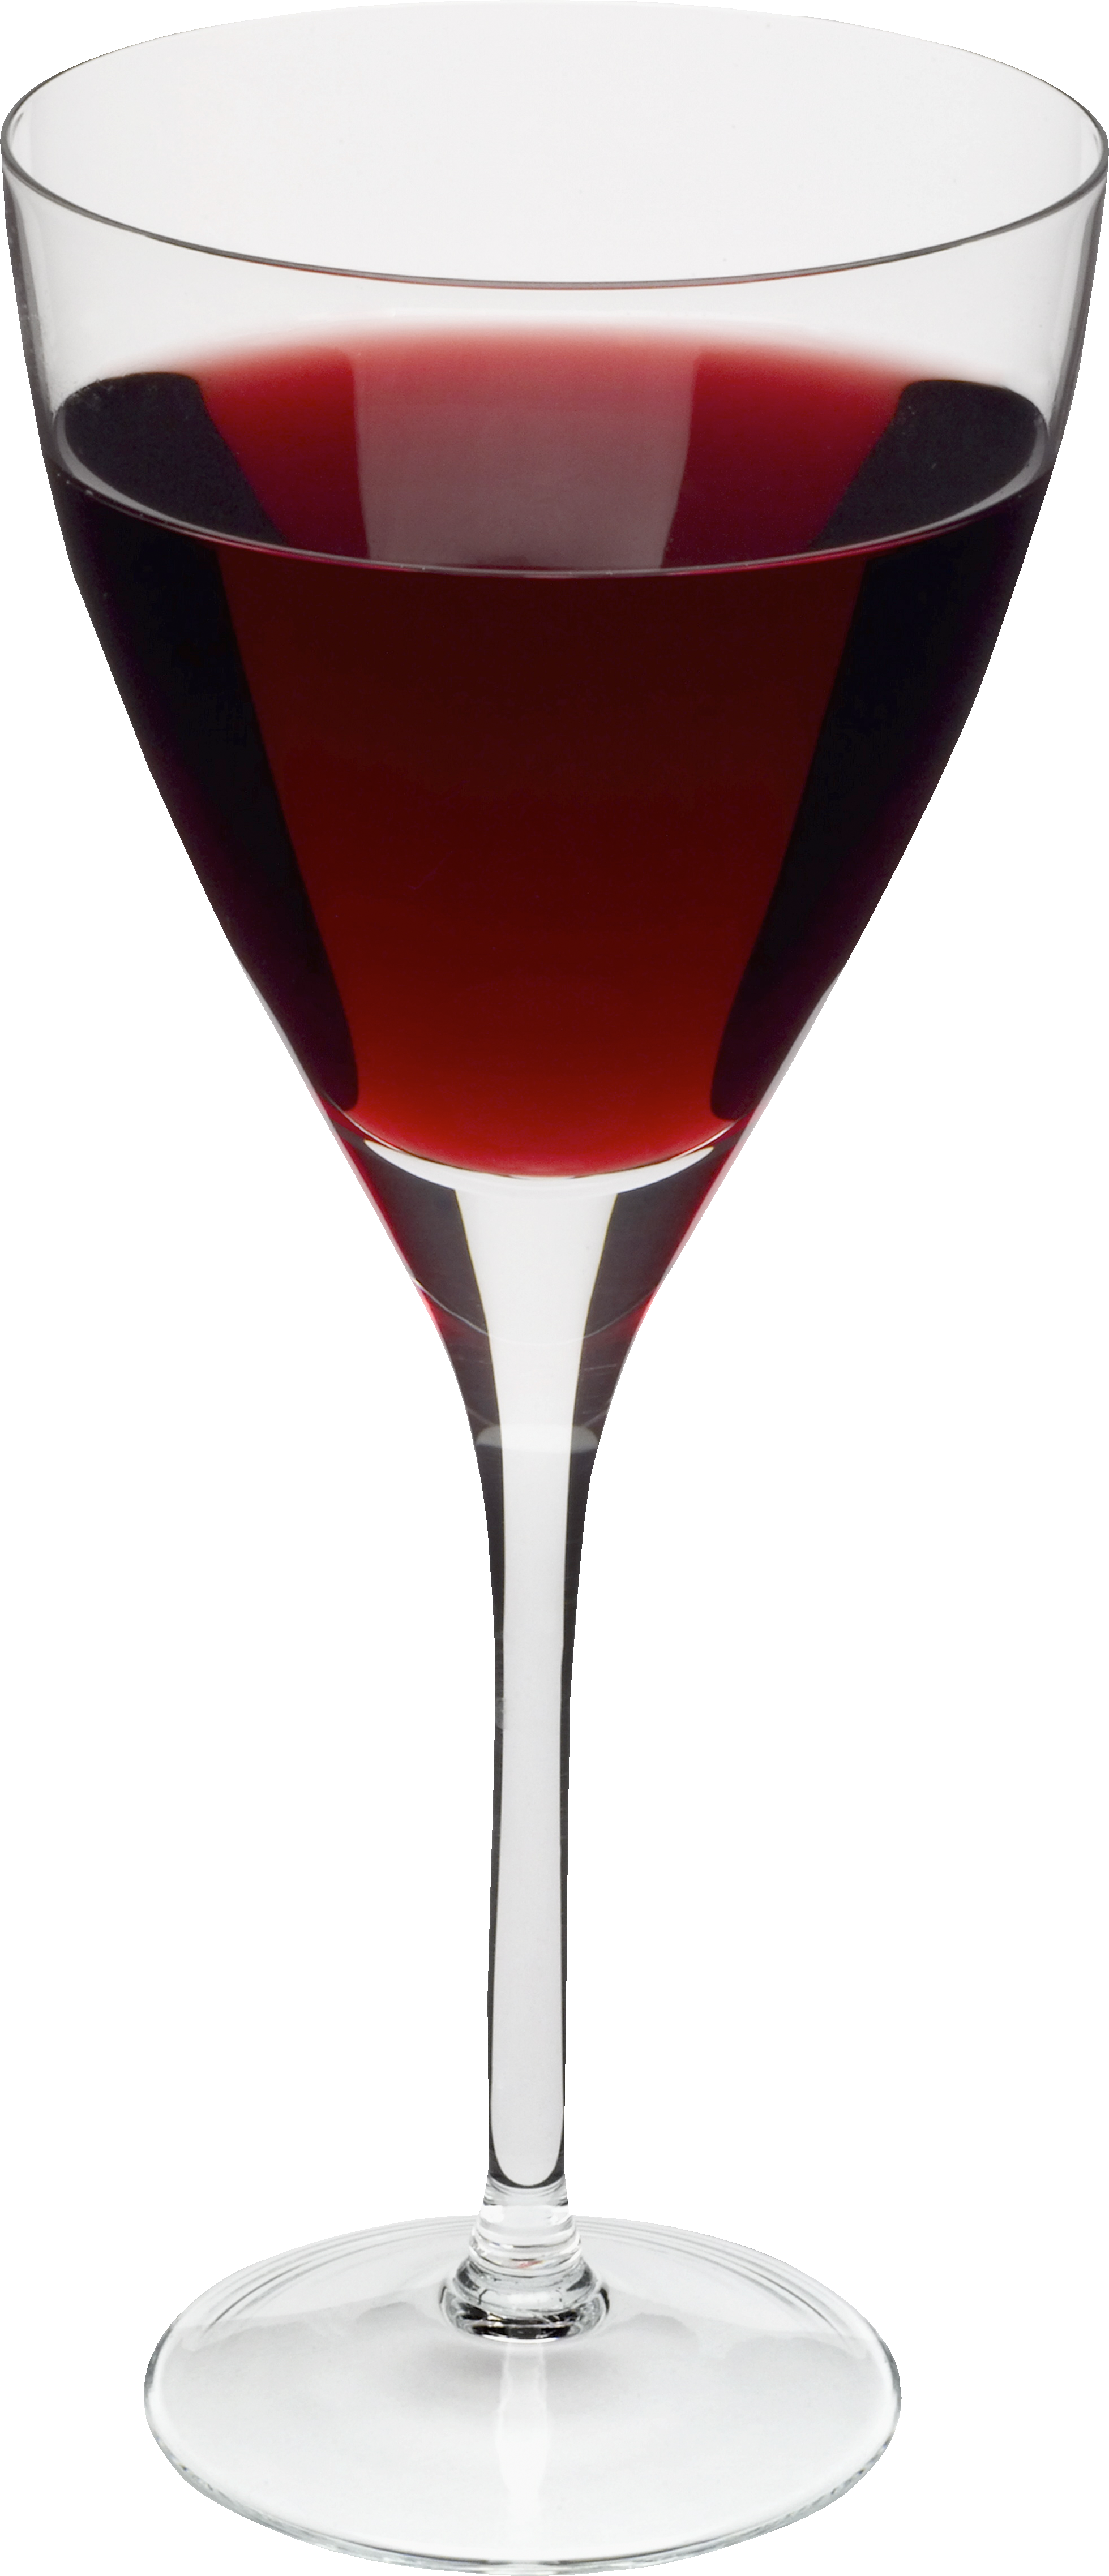 Drinking clipart cocktail glass. Of wine twenty three